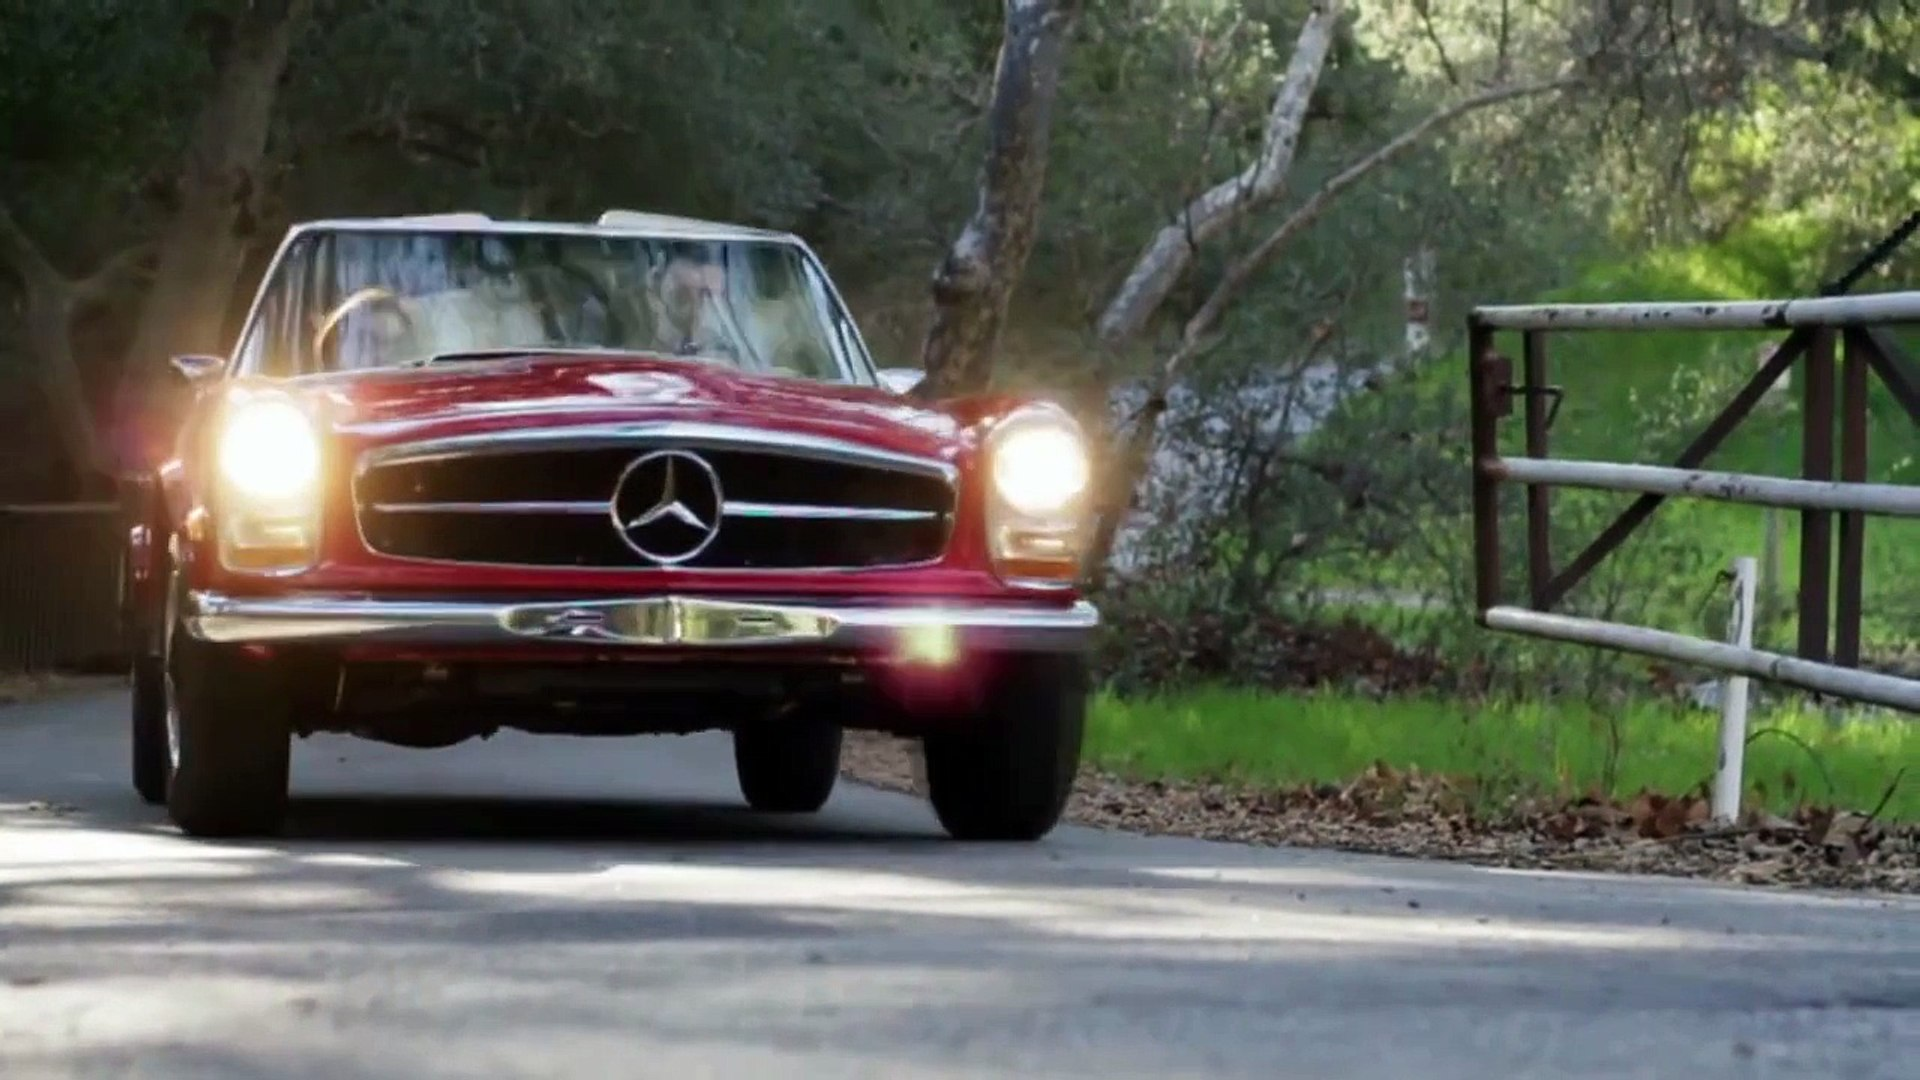 Mercedes-Benz TV: Mercedes-Benz 230 SL. Out of love for the